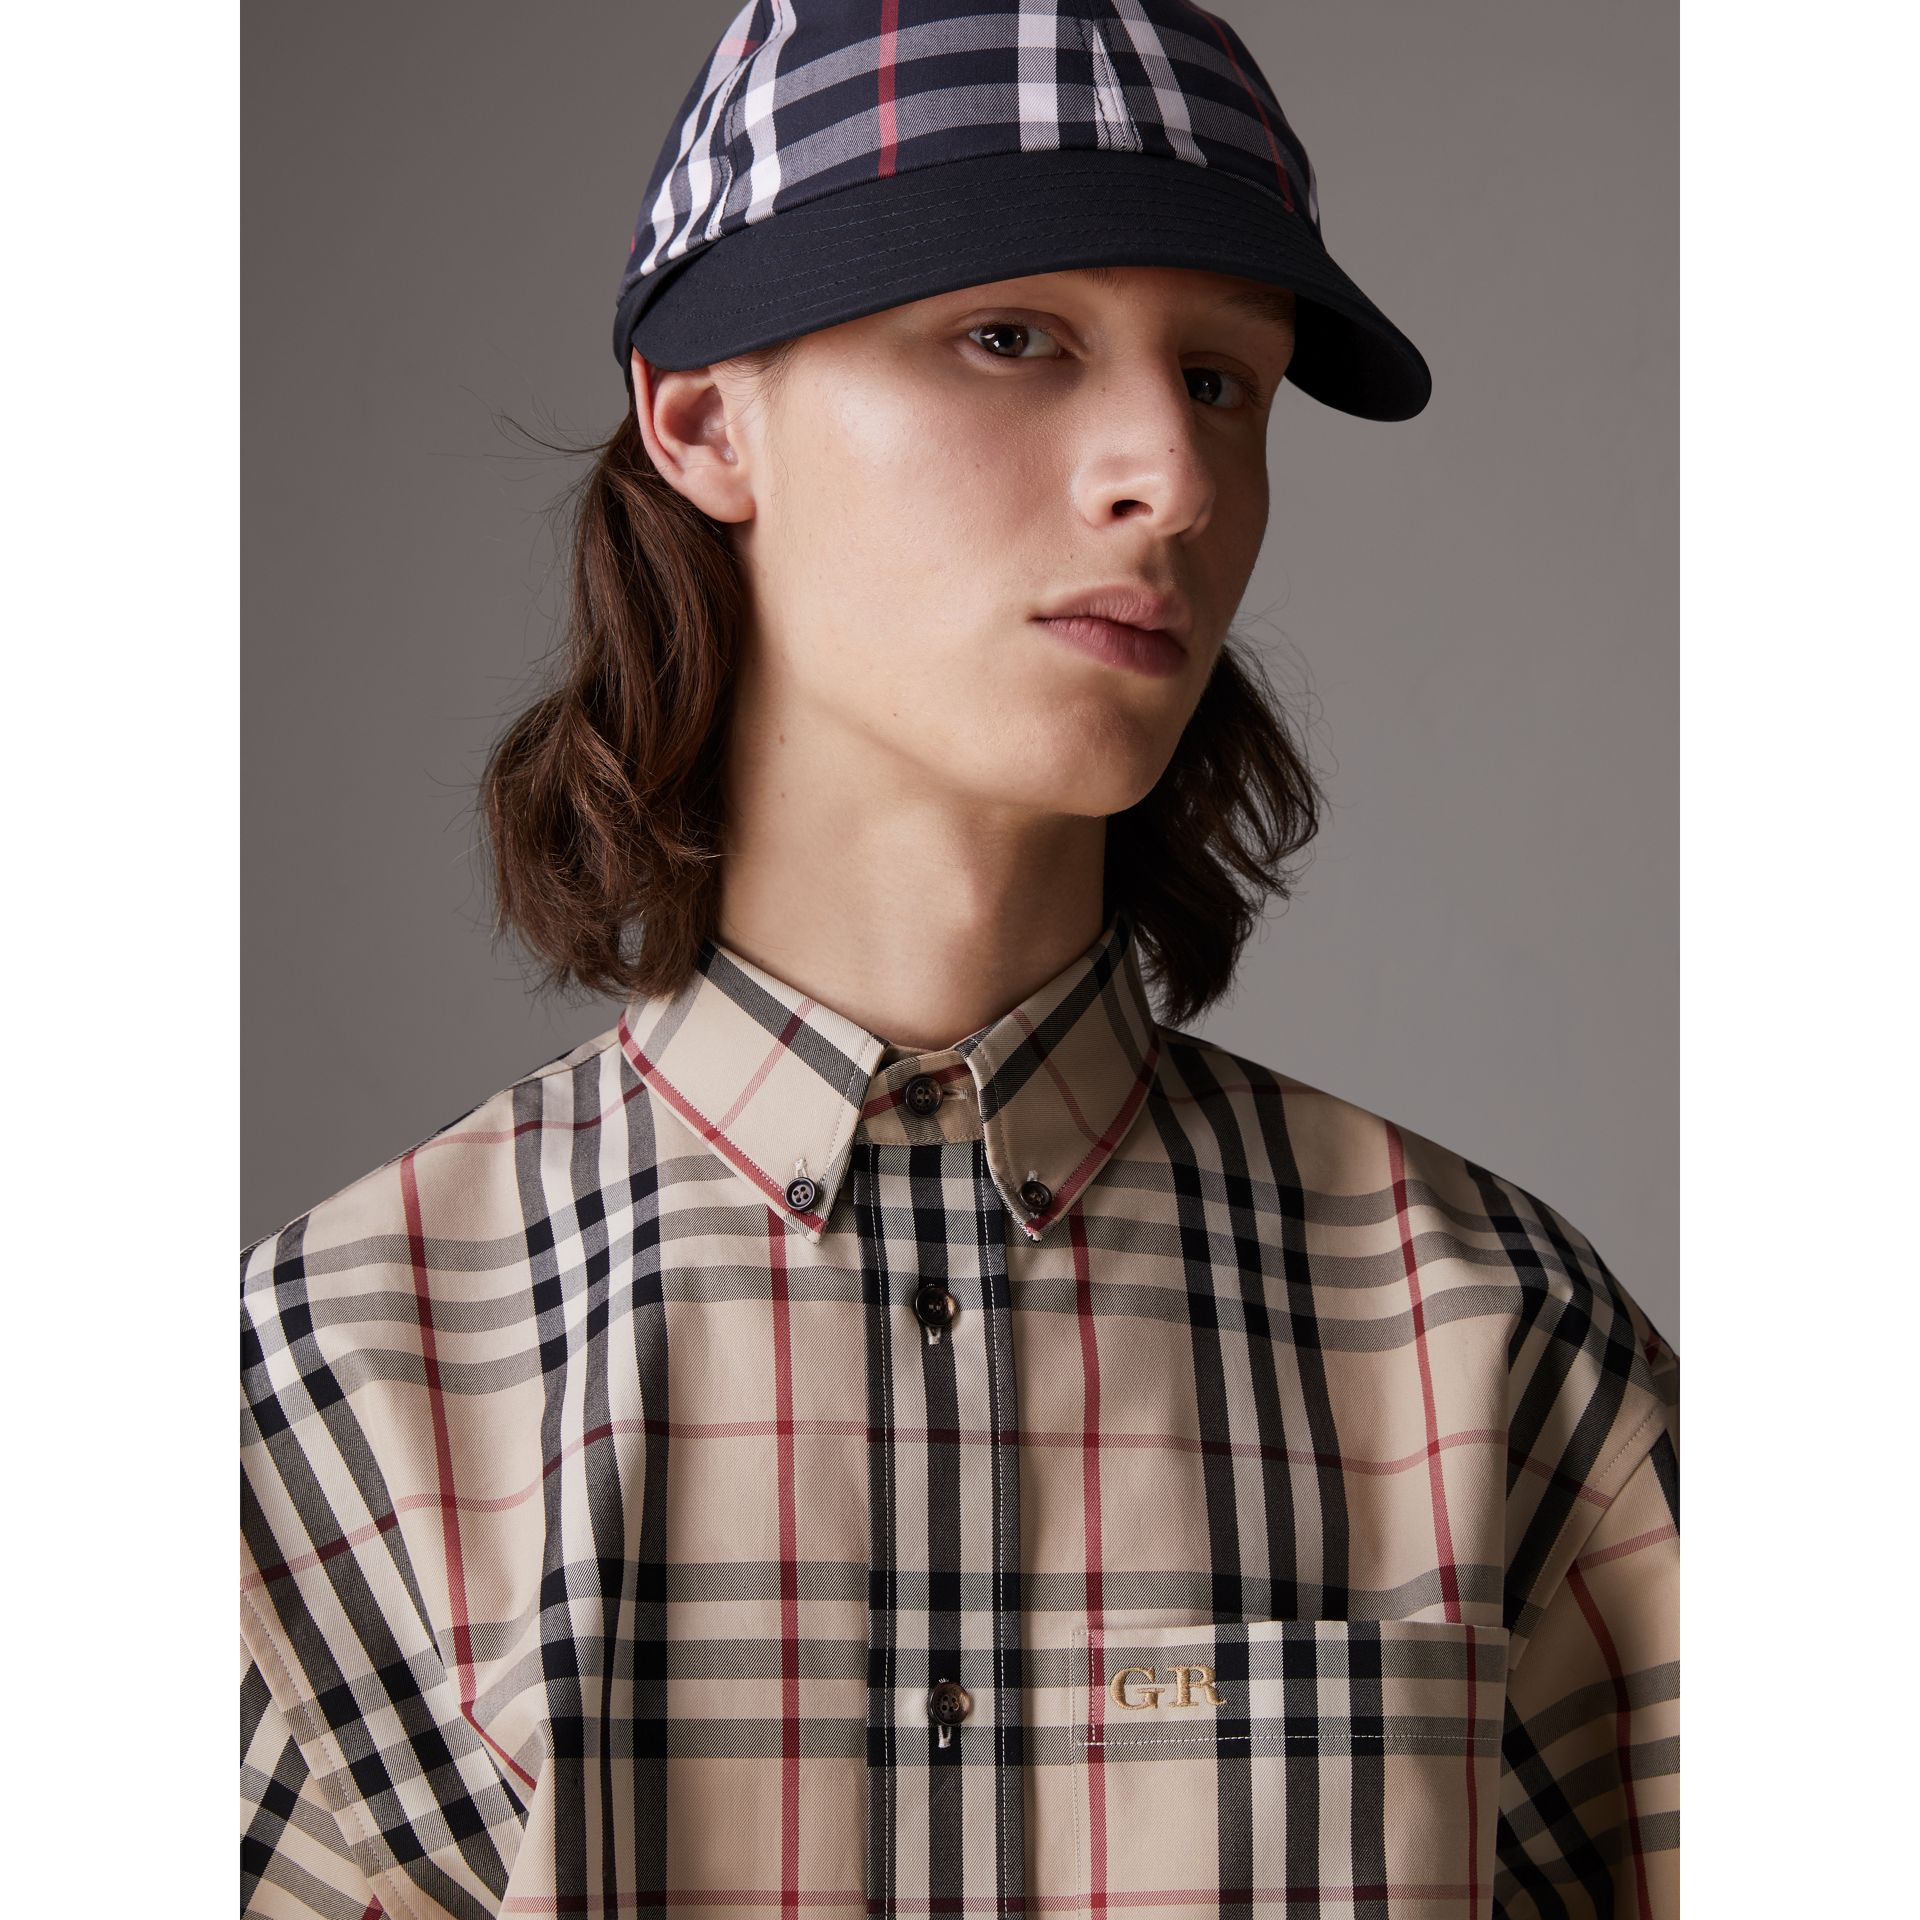 6501fdd3f5a Burberry Gosha x Burberry Baseball Cap at £175